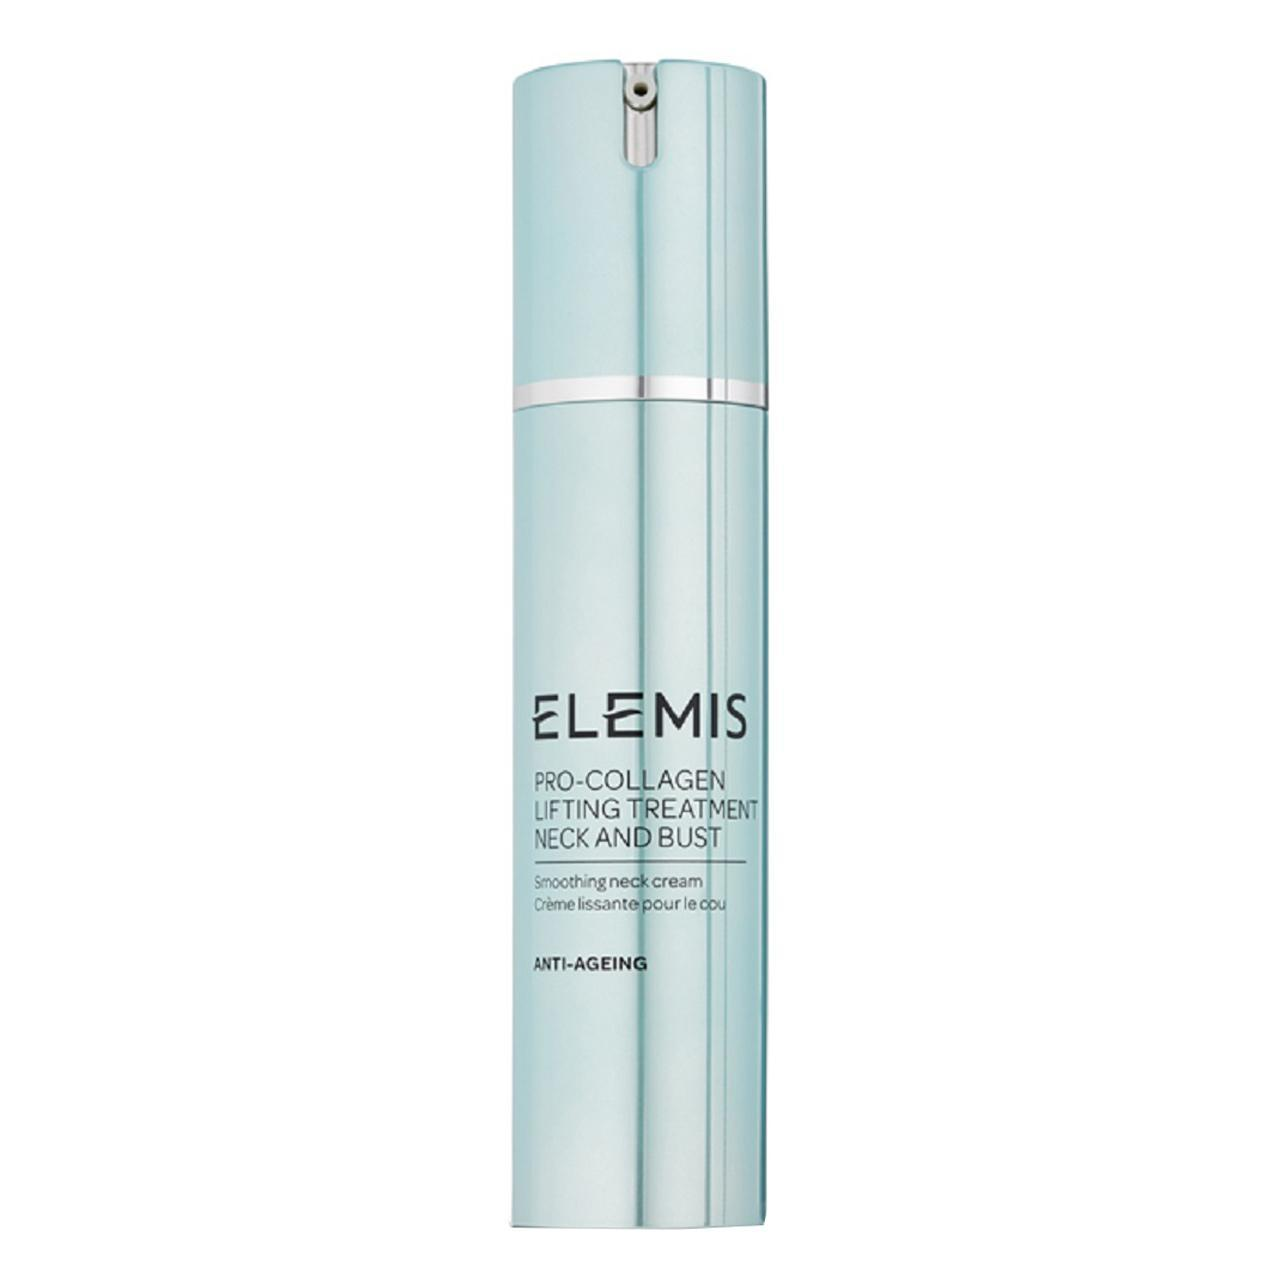 An image of ELEMIS Pro-Collagen Lifting Treatment Neck and Bust Cream